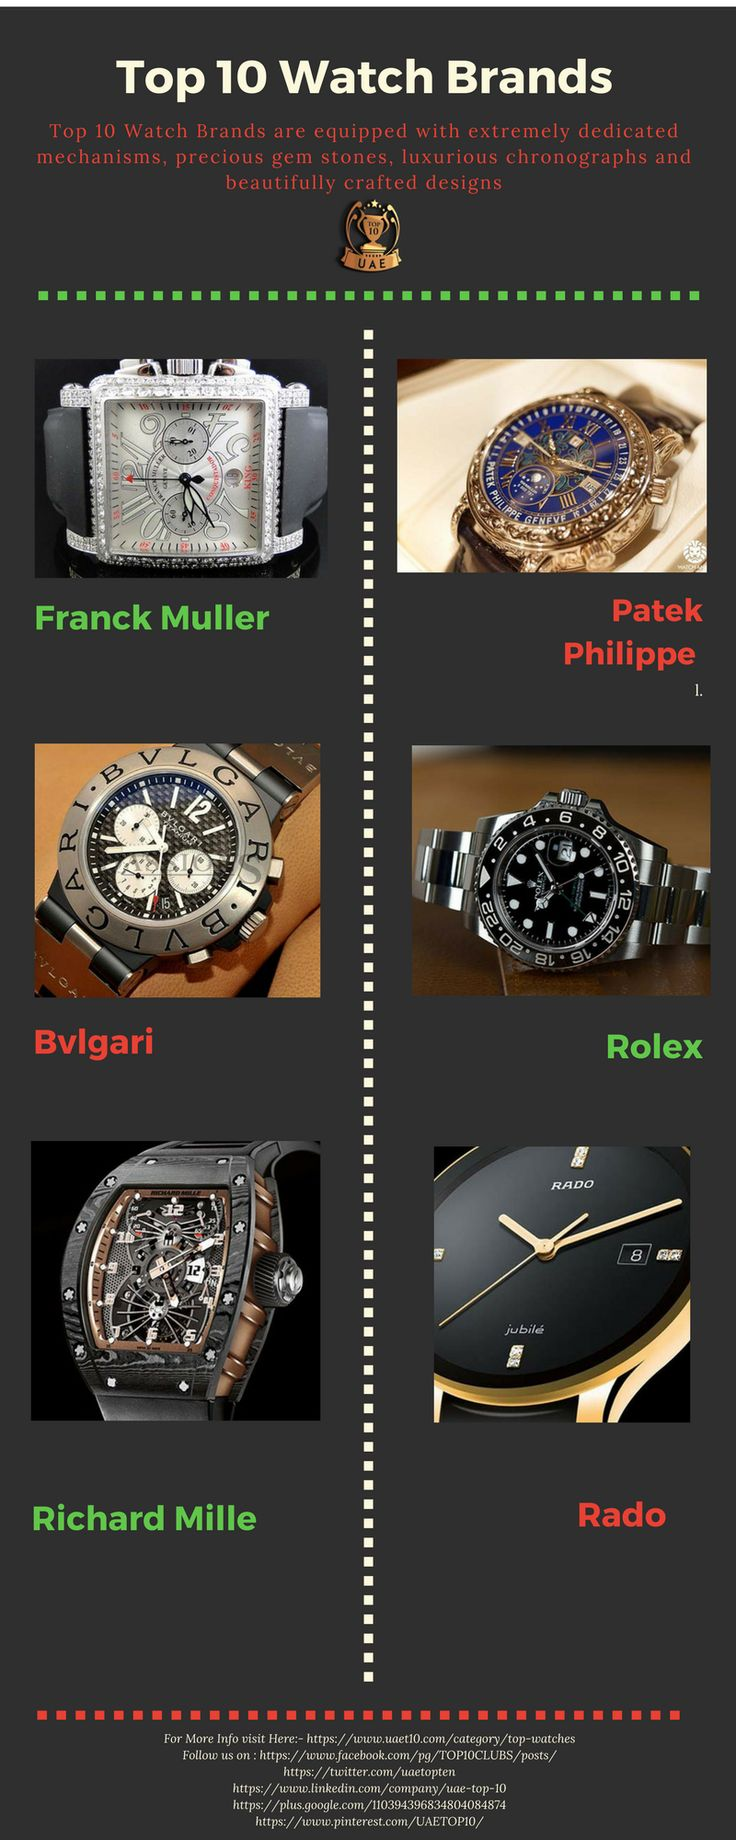 Top 10 watch Brands are great about having plenty of added features that cheaper brand names lack. Brands like Frank Muller, Bvlgari, Audemars etc.